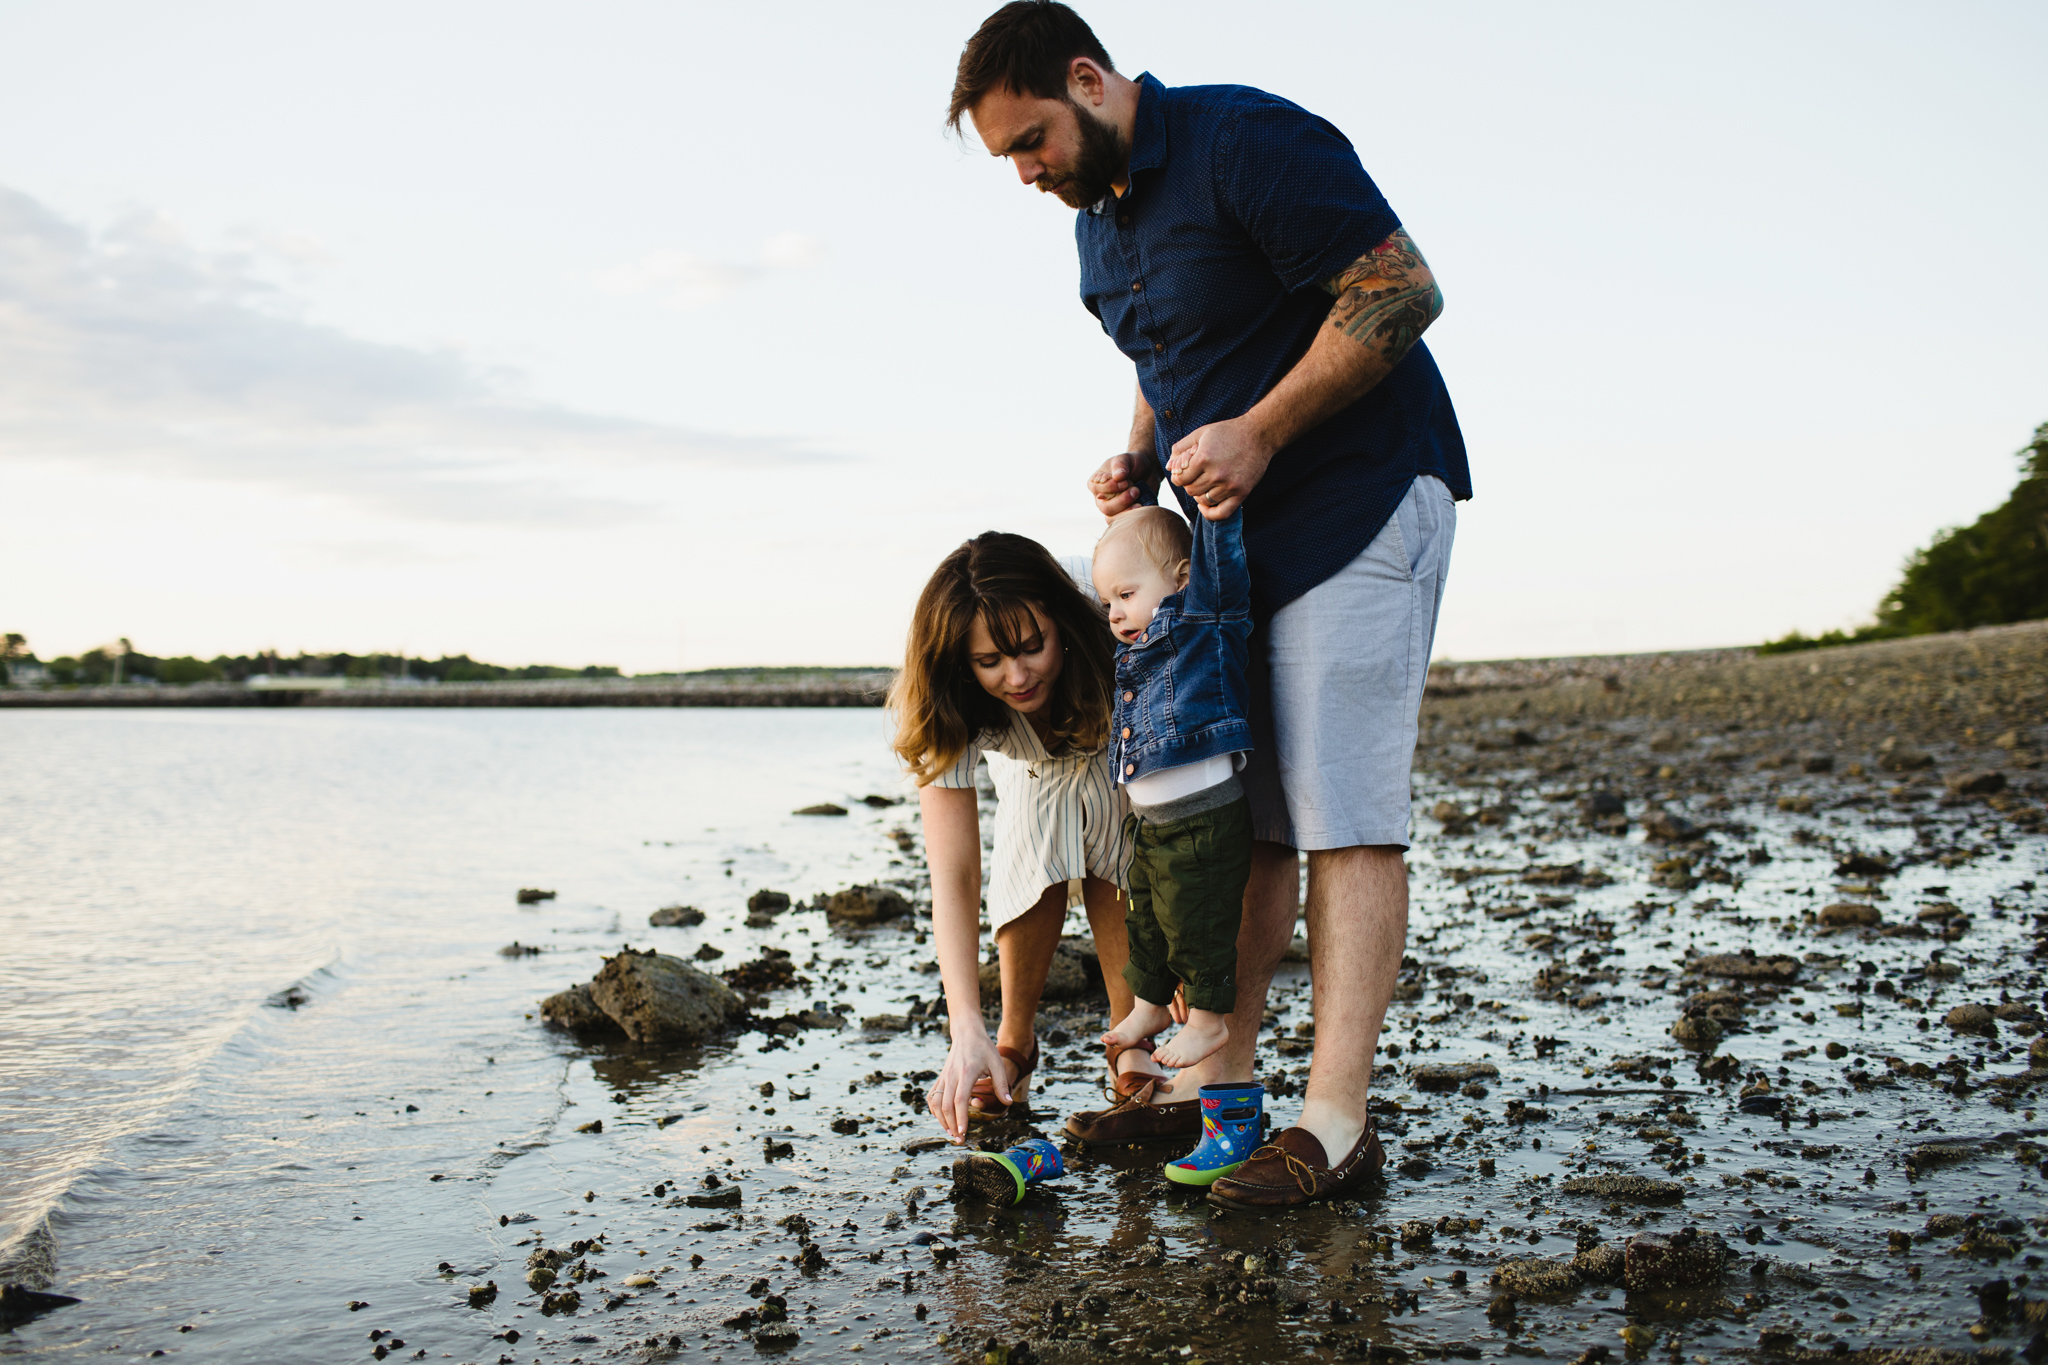 maine-family-photographer-beach-summer-129.jpg